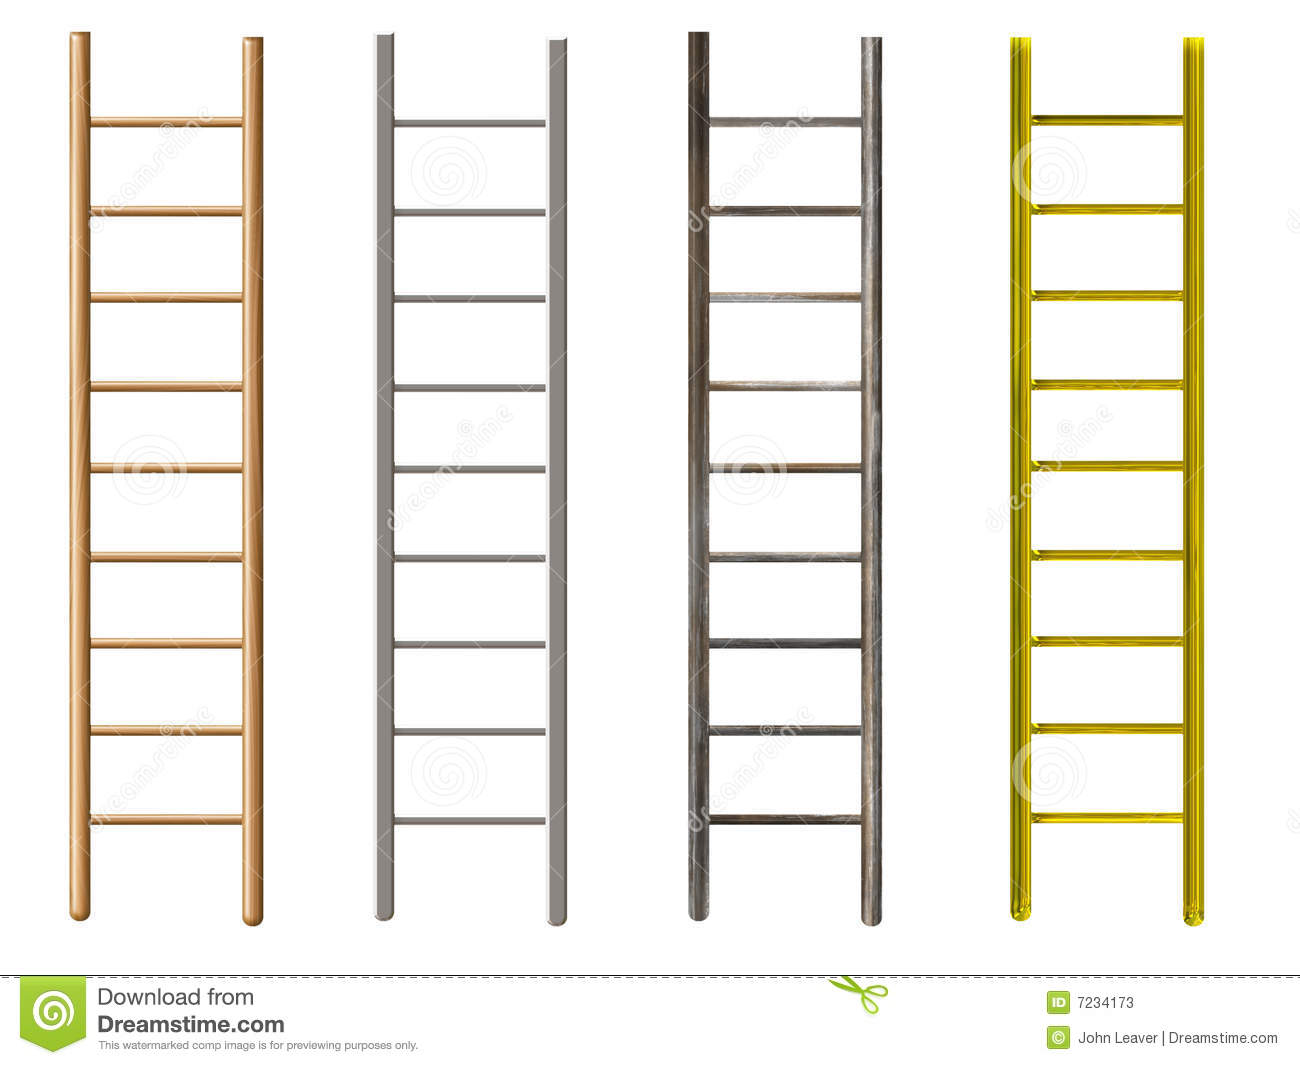 ladders, wood, metal, old, rusty, gold.